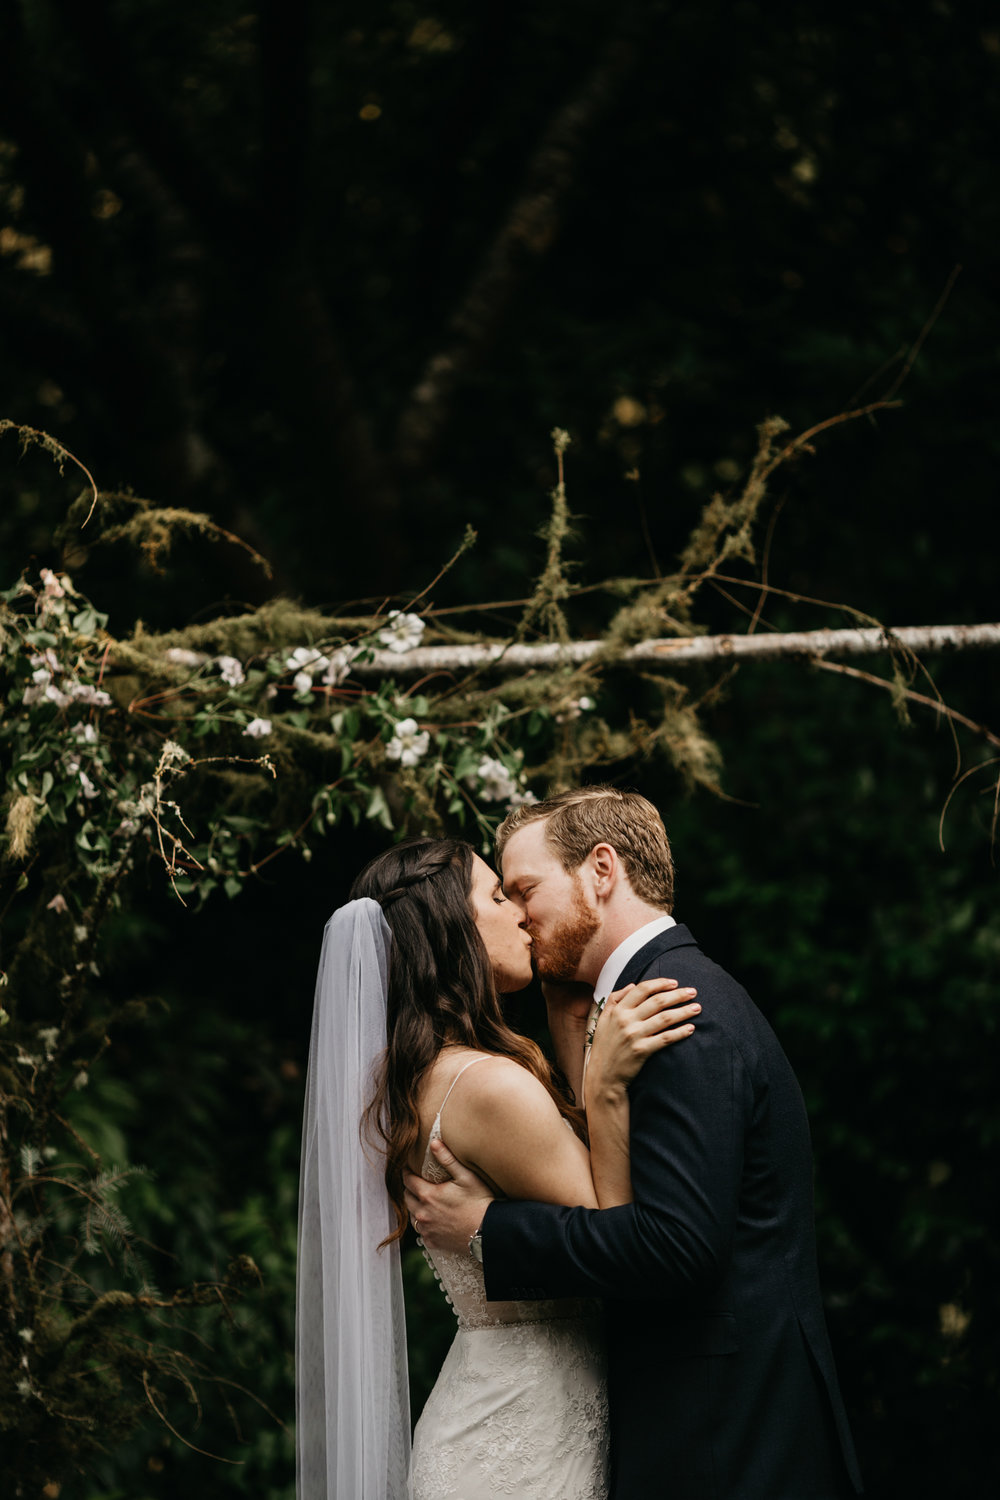 Max&SamPhoto_Seattle Wedding Photographer_Bellevue Robinswood House_090.jpg